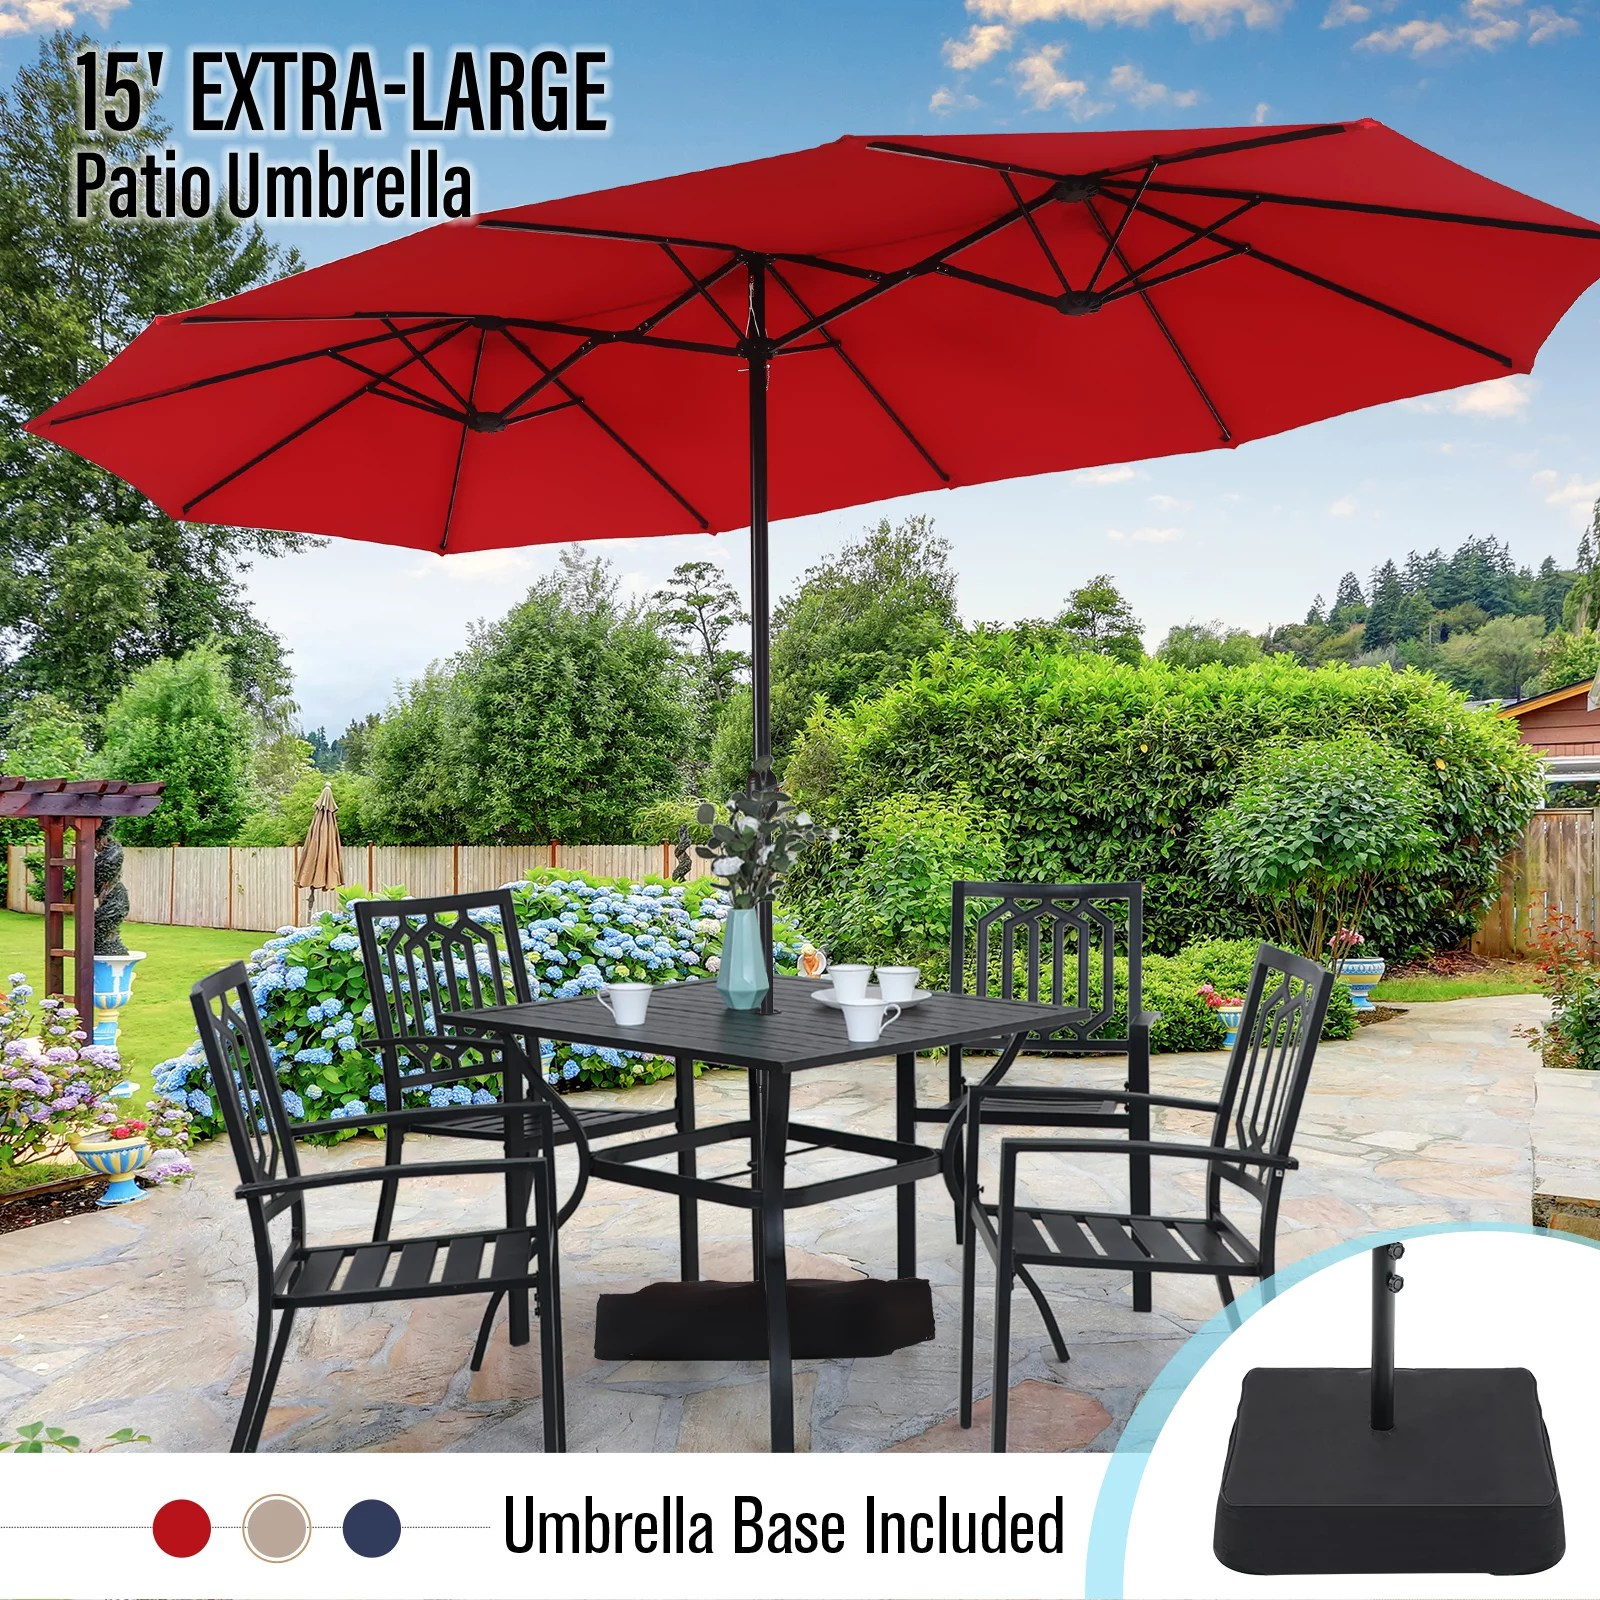 mf studio 15ft double sided patio umbrella with base large outdoor table umbrella red